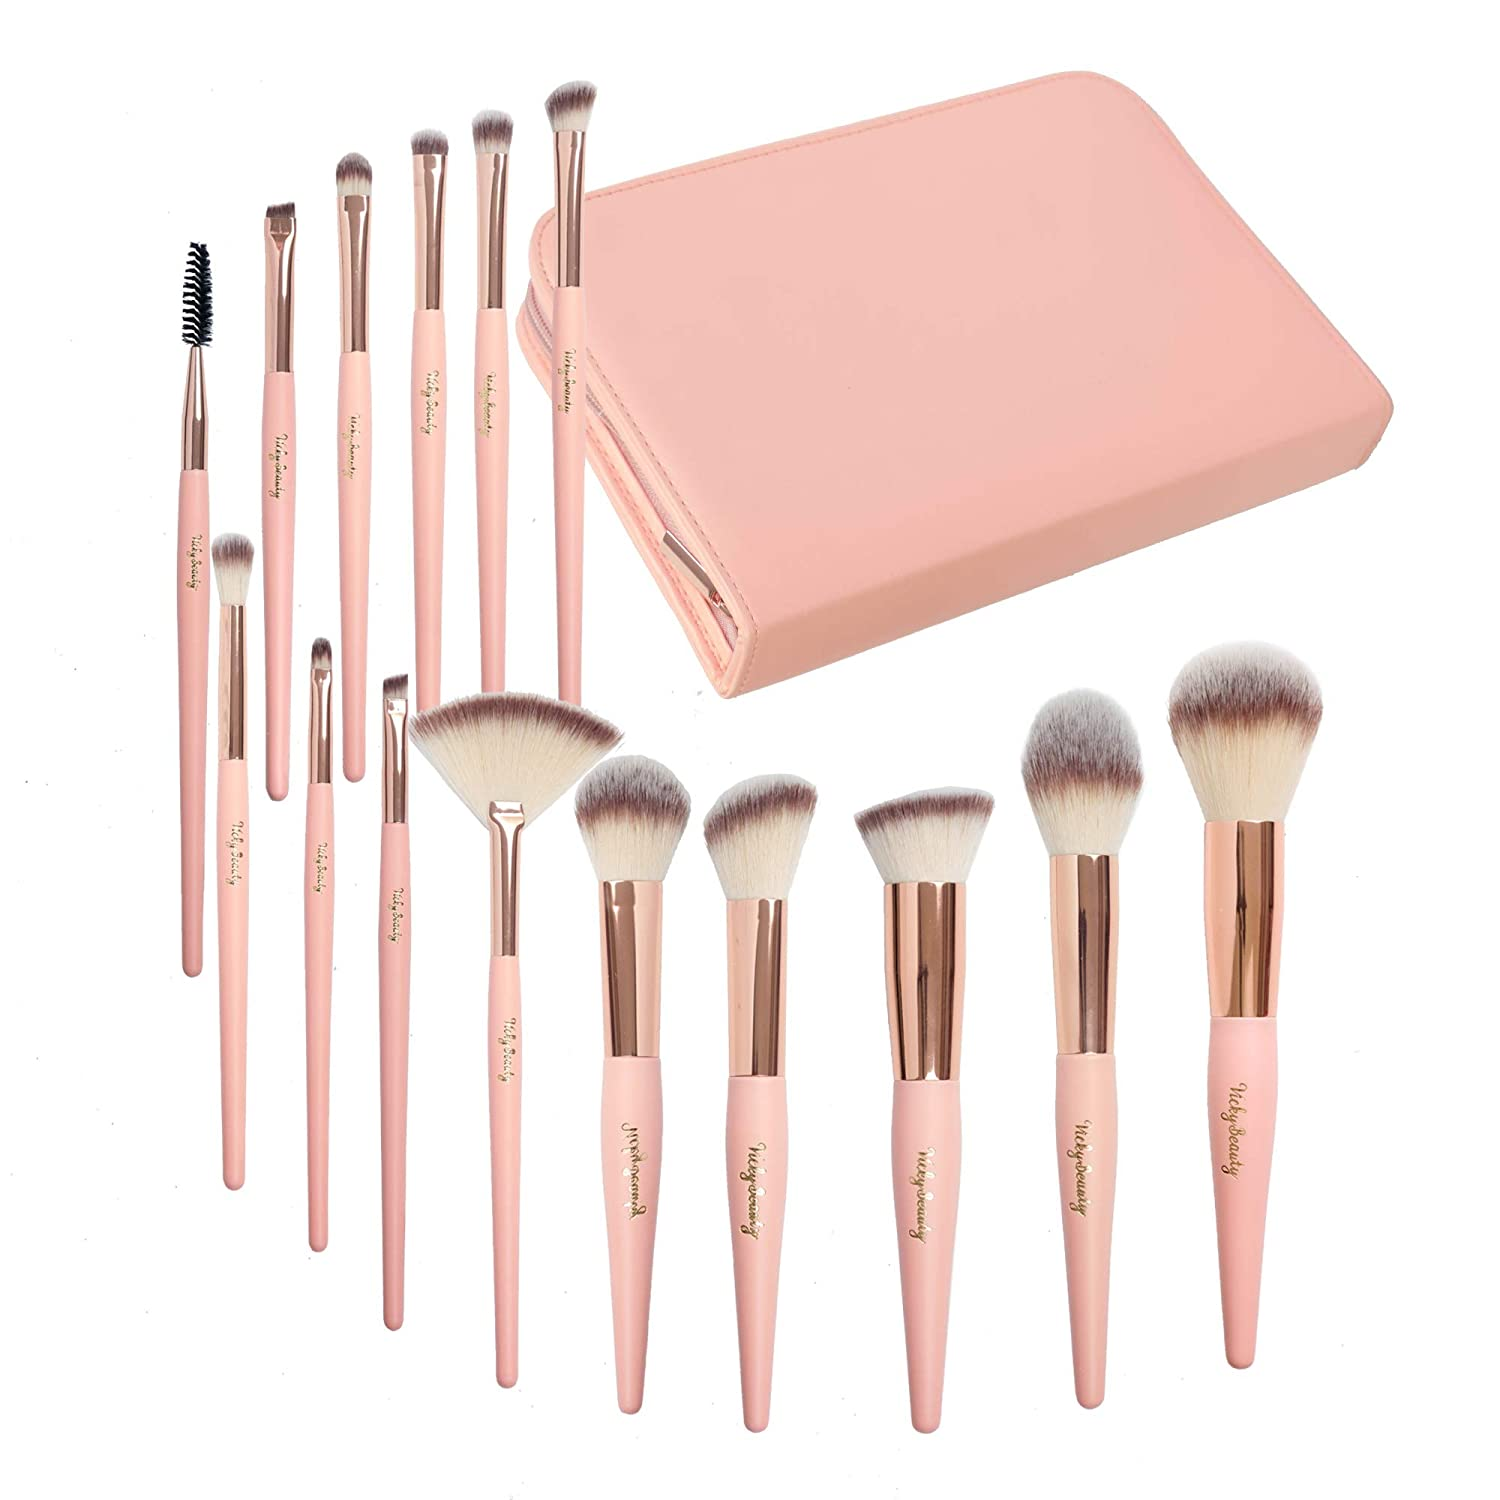 Professional Makeup Brush Set-15 Premium Cosmetic Applicators with Soft Synthetic Vegan Bristles Rose Gold Pink Wood Handles– 15pc Beauty Brushes Kit with Zip Organizer Case Travel Bag By Vickybeauty